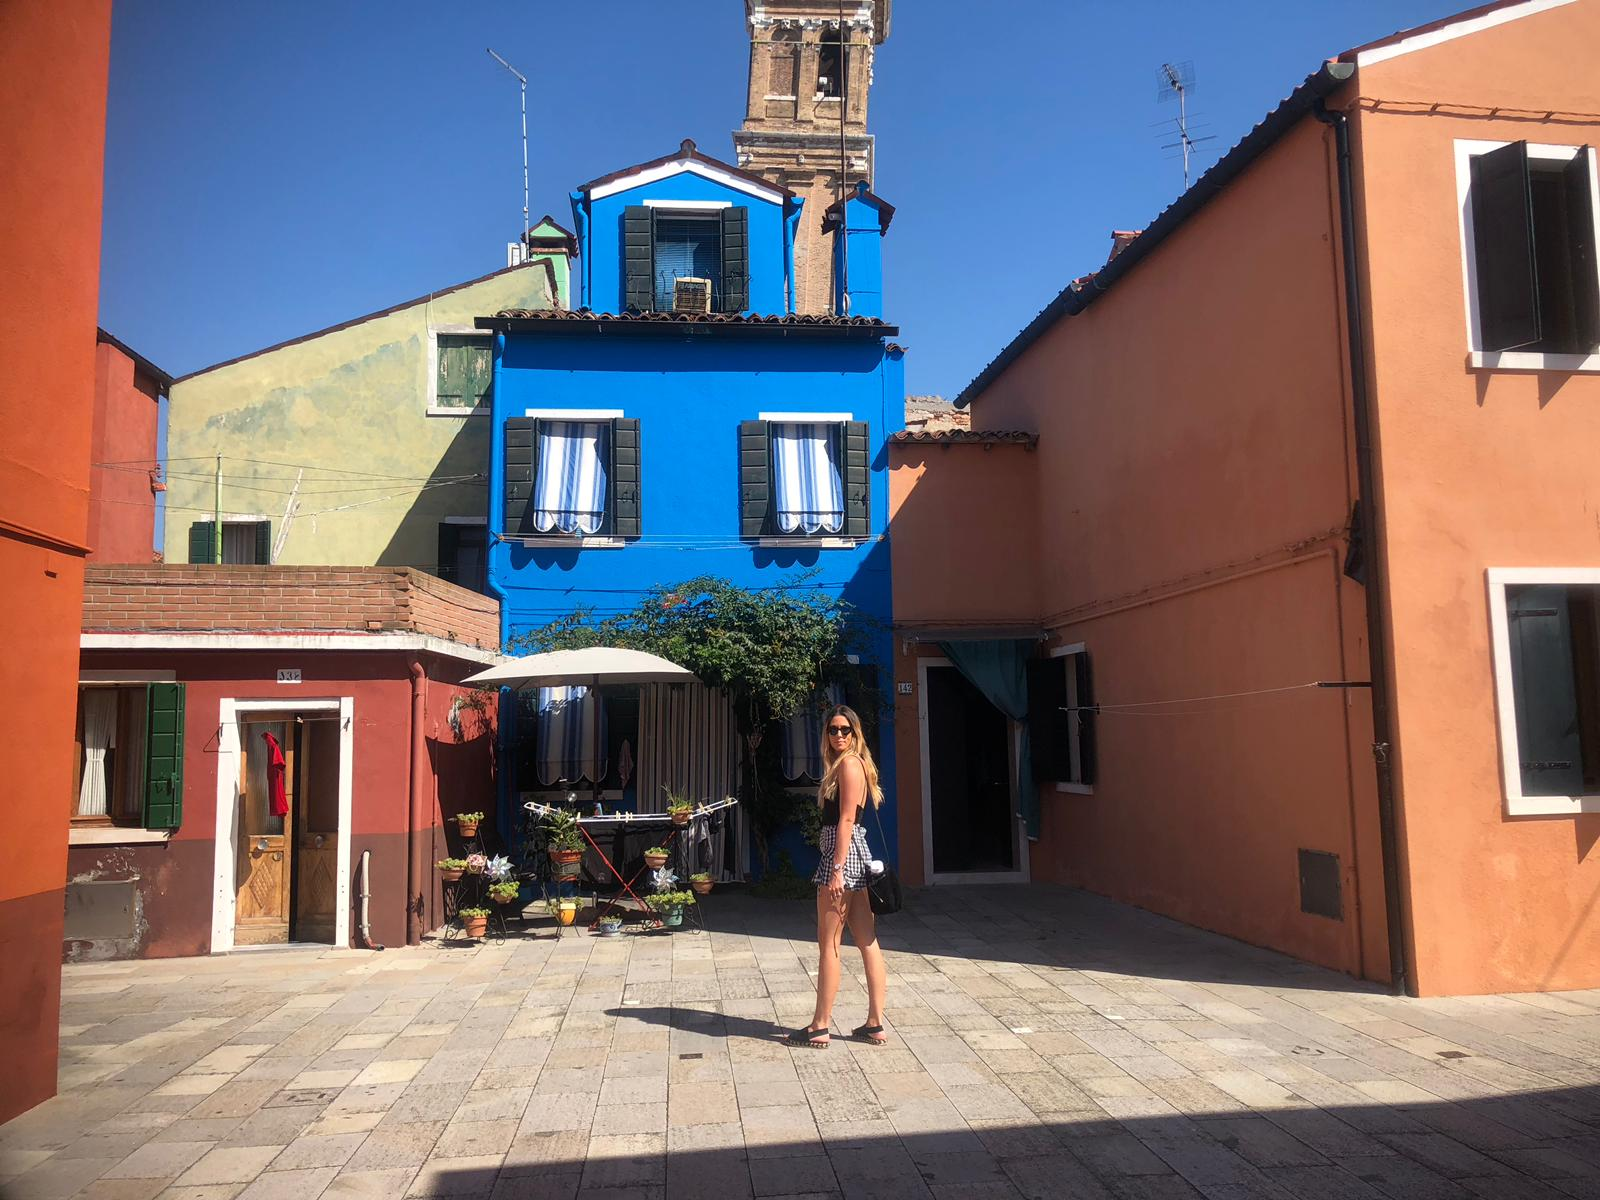 Burano - 3 days in Venice